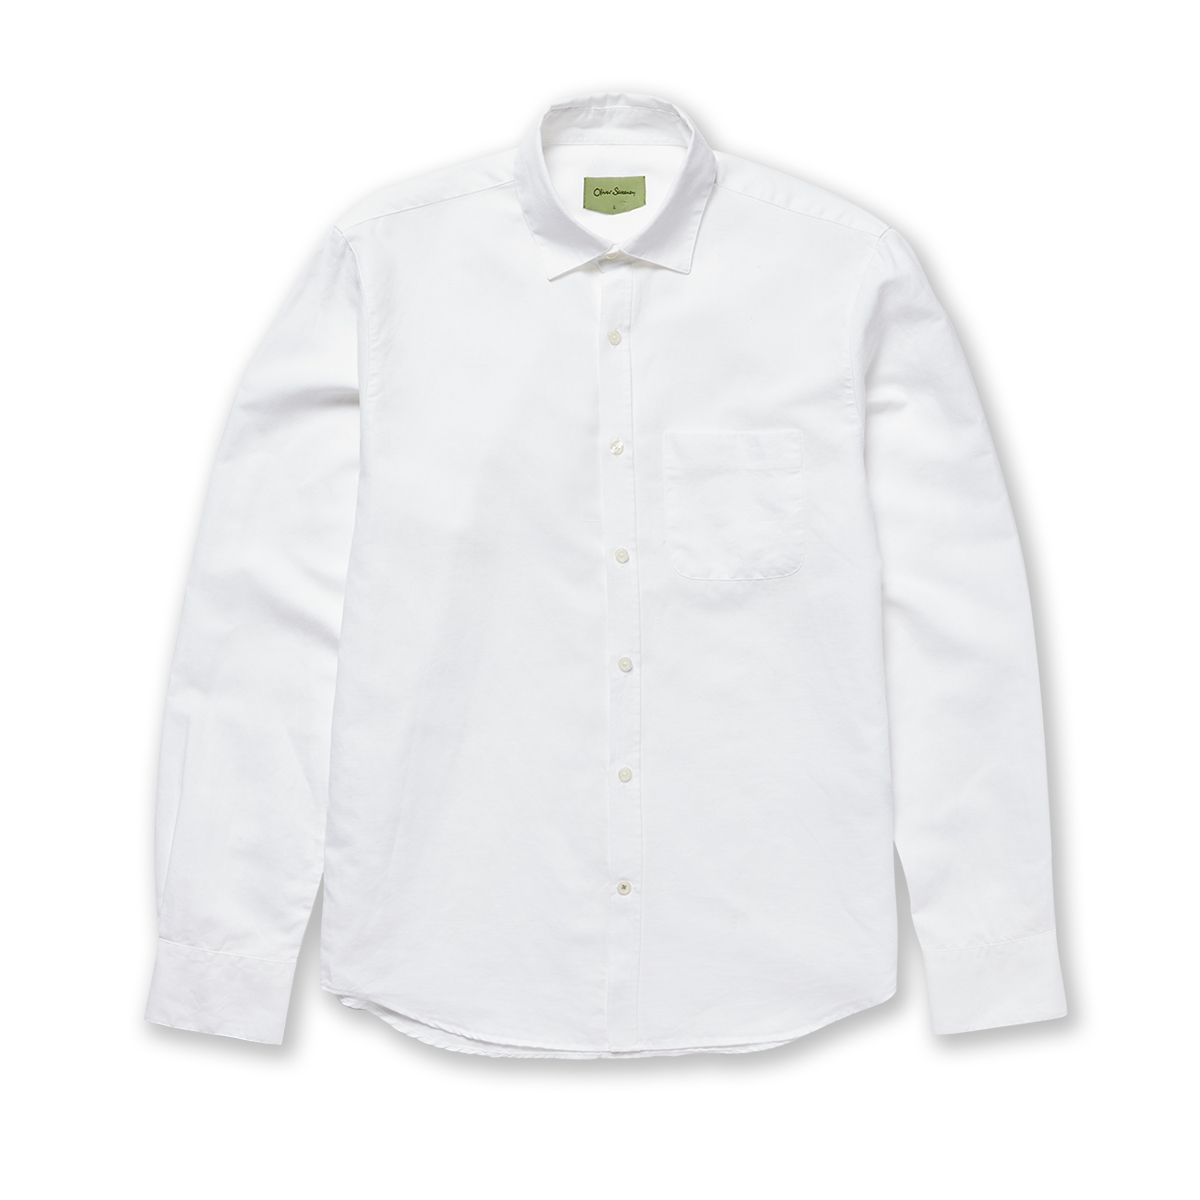 Christow White Cotton Linen Casual Shirt By Oliver Sweeney Thread Com